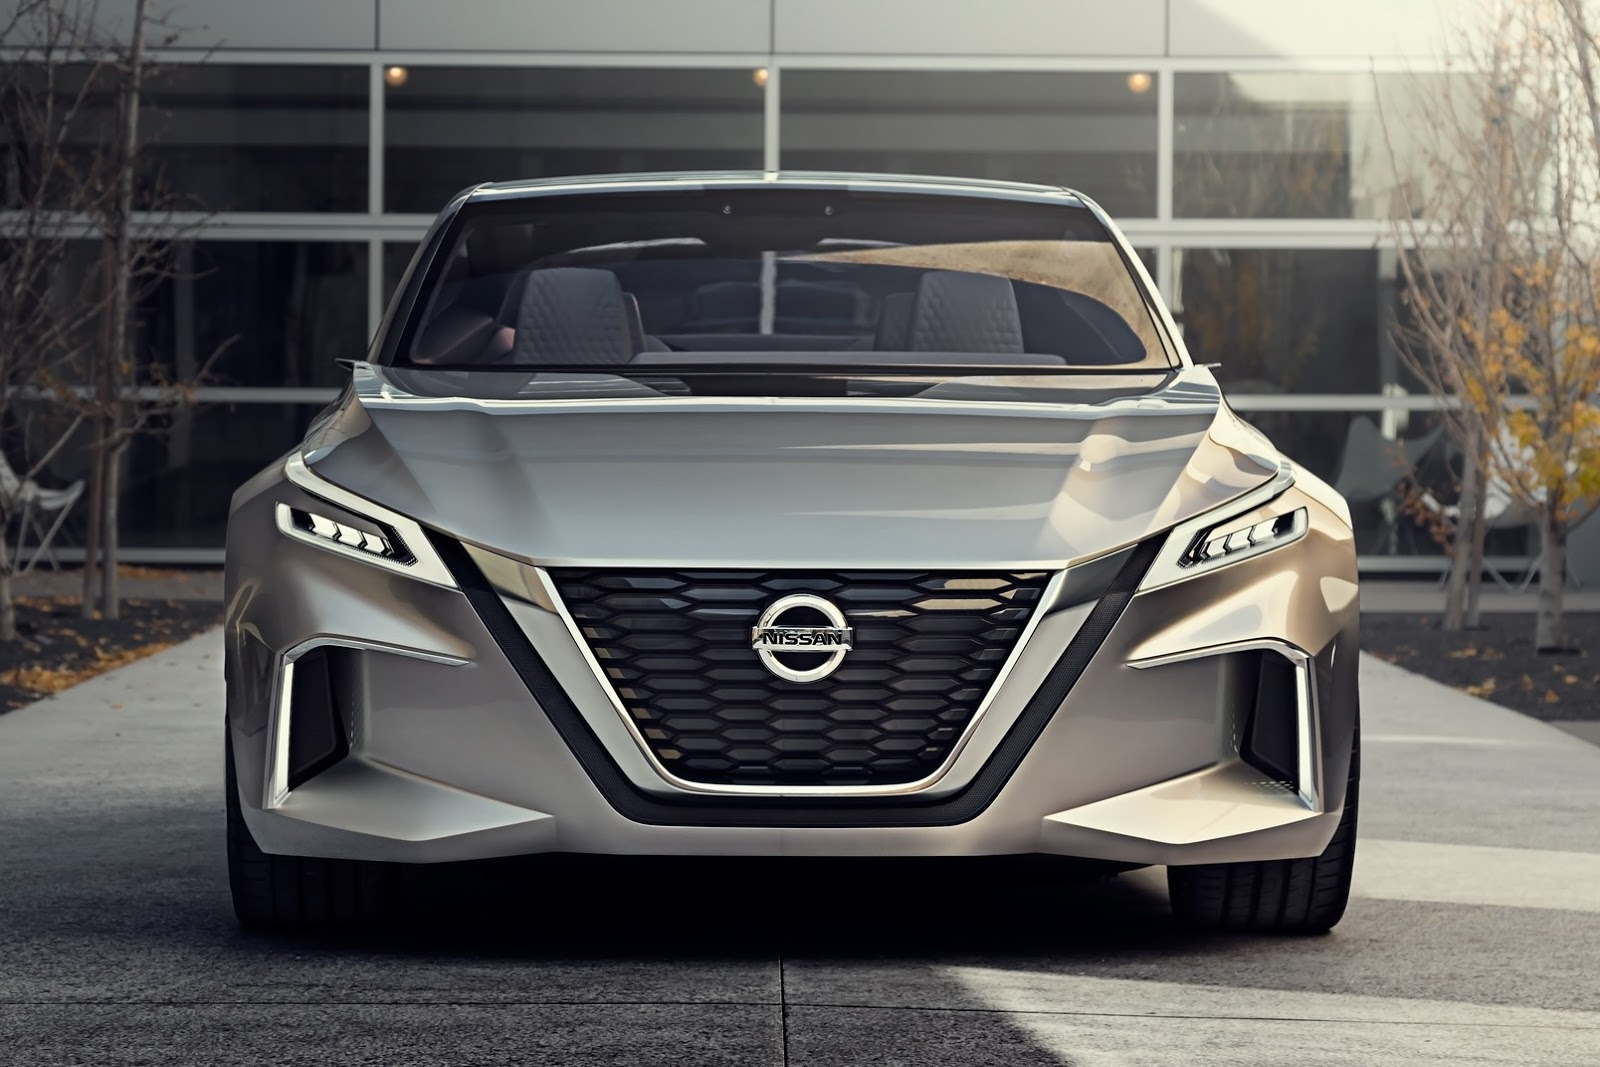 Nissan Vmotion 2.0 concept (3)